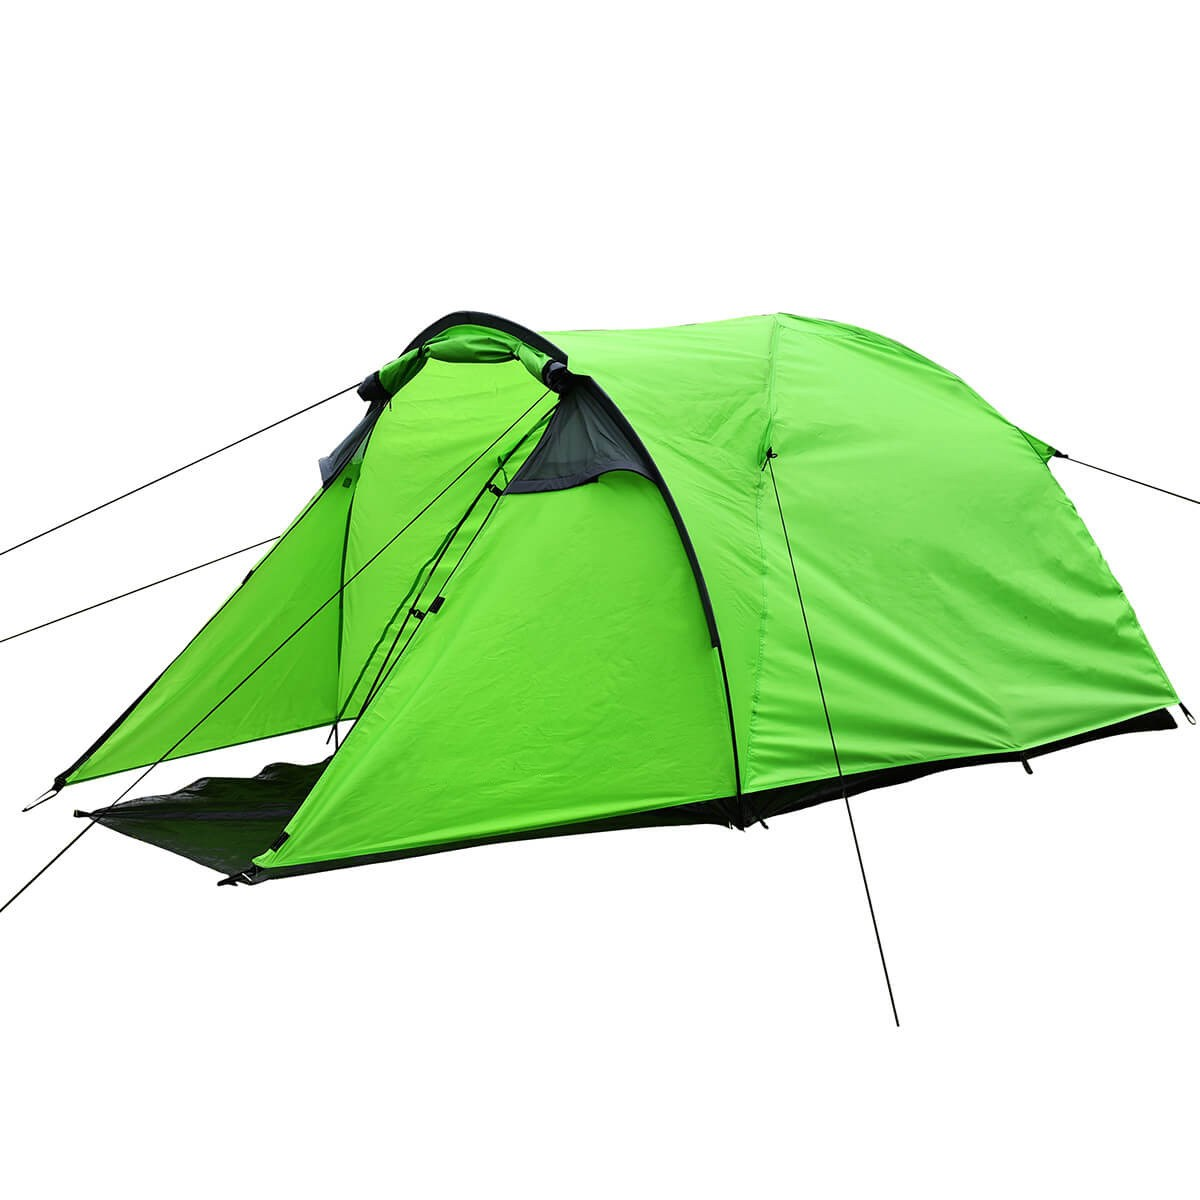 2 Man Tent with Awning